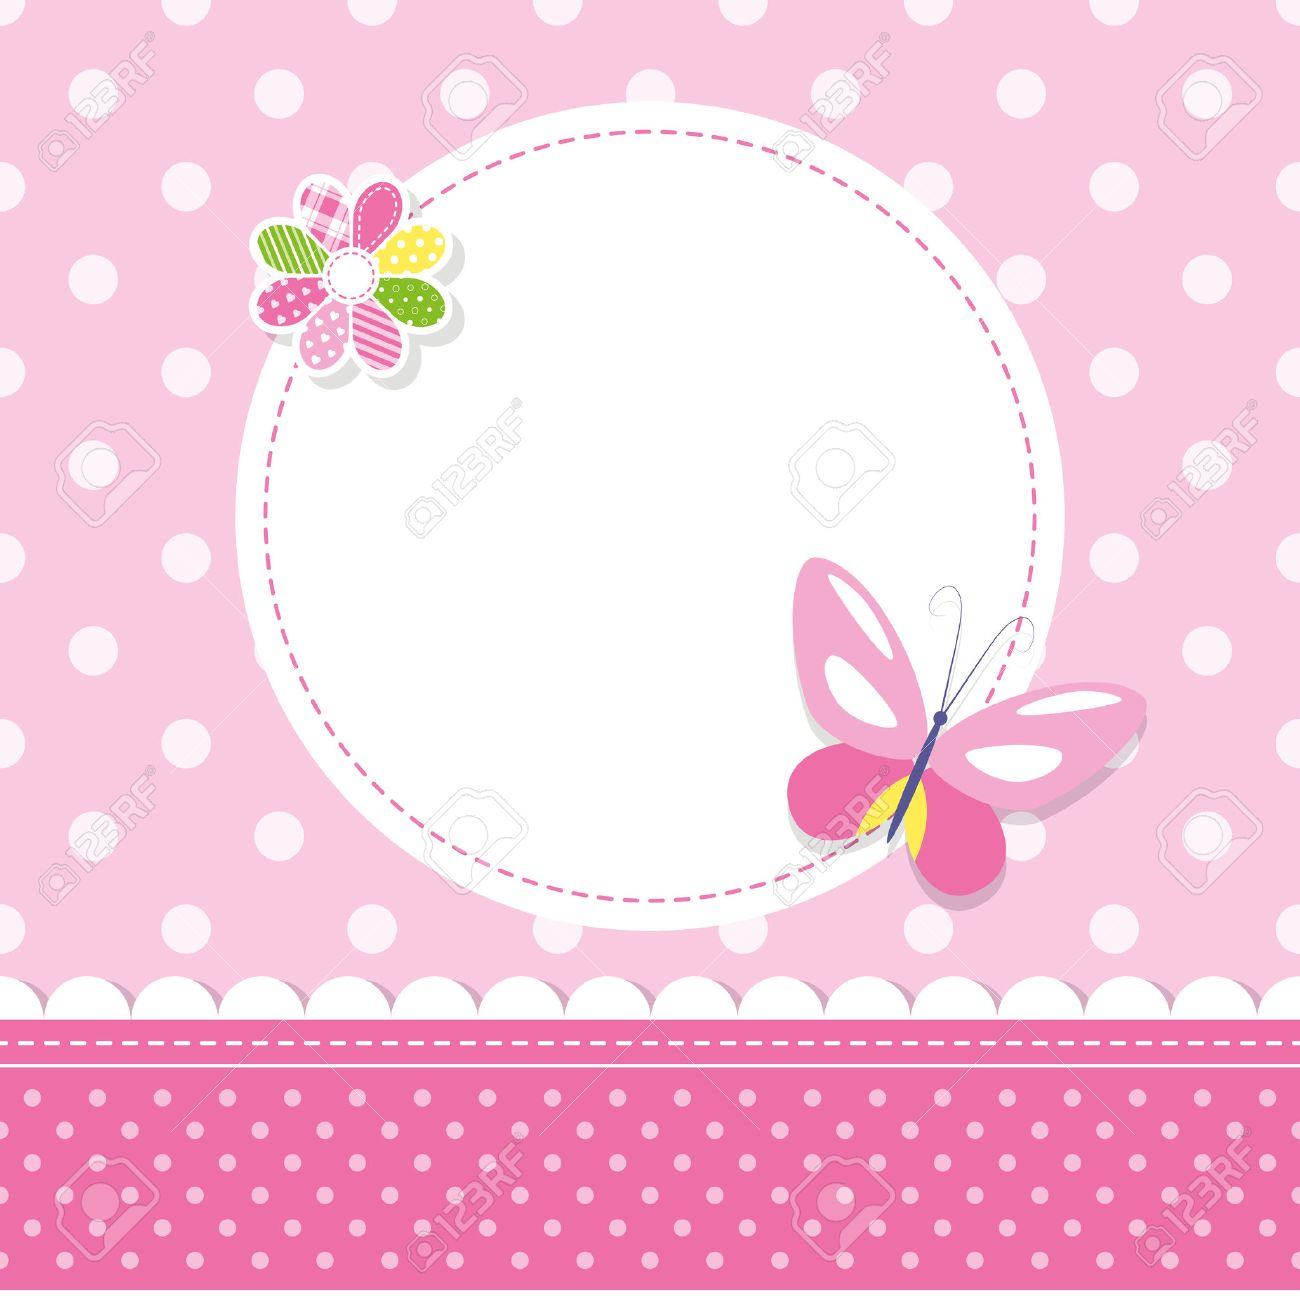 Pink butterfly baby girl greeting card royalty free cliparts pink butterfly baby girl greeting card stock vector 36742276 kristyandbryce Images